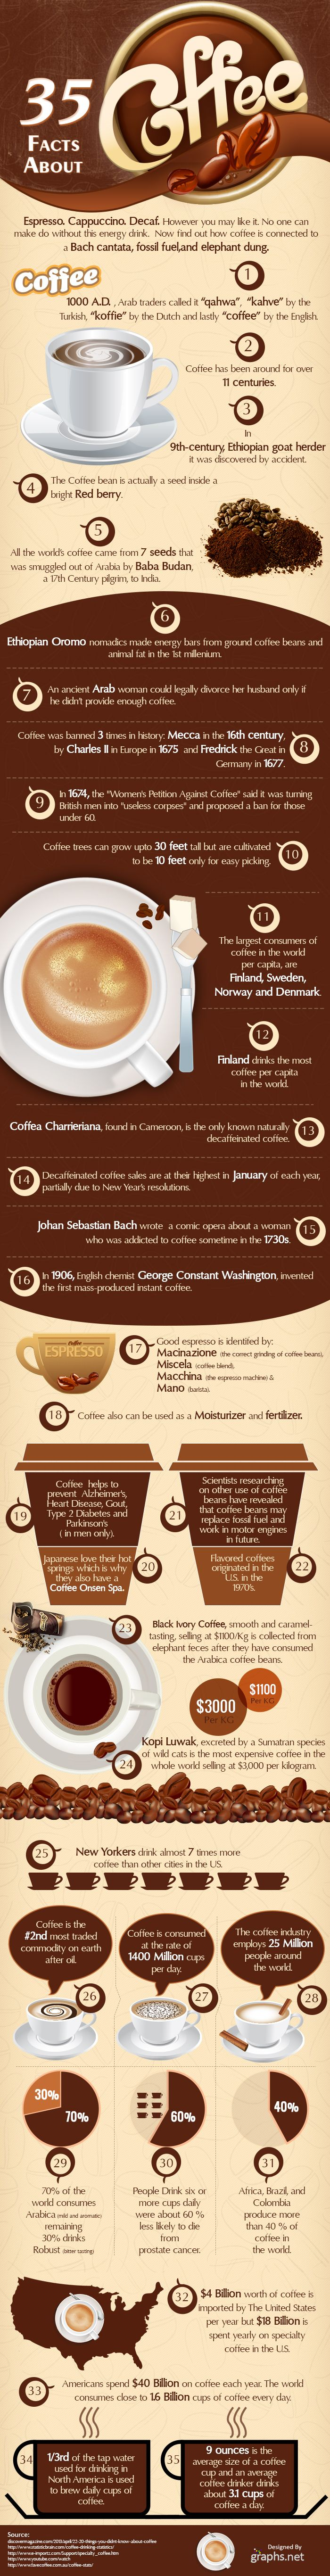 35 Interesting Facts About Coffee #Infographic #Coffee #Facts